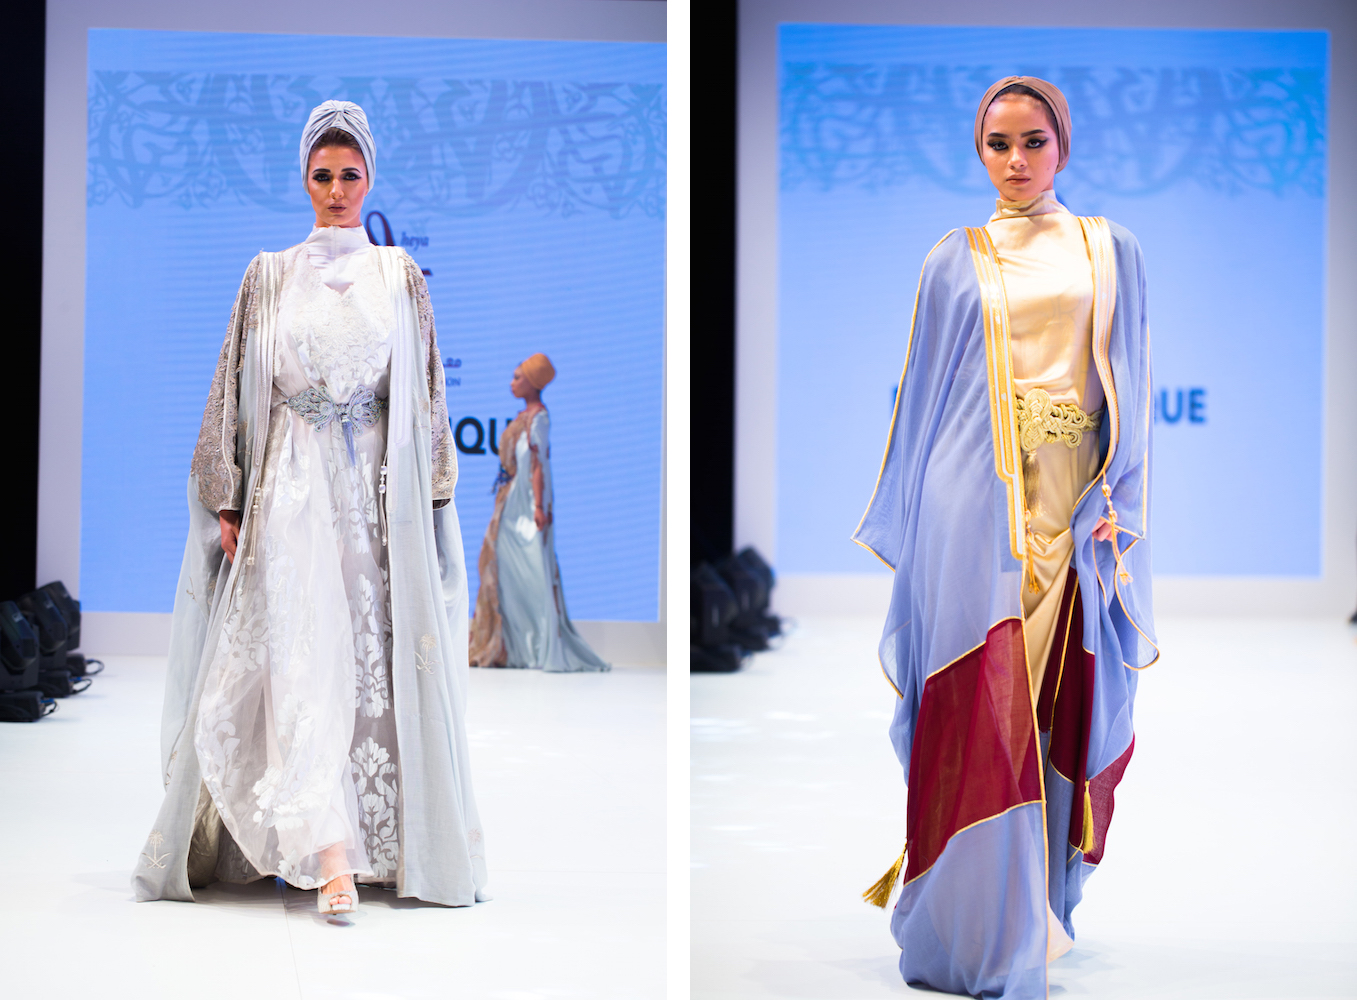 7th Heya Arabian Fashion Exhibition,  June 2015